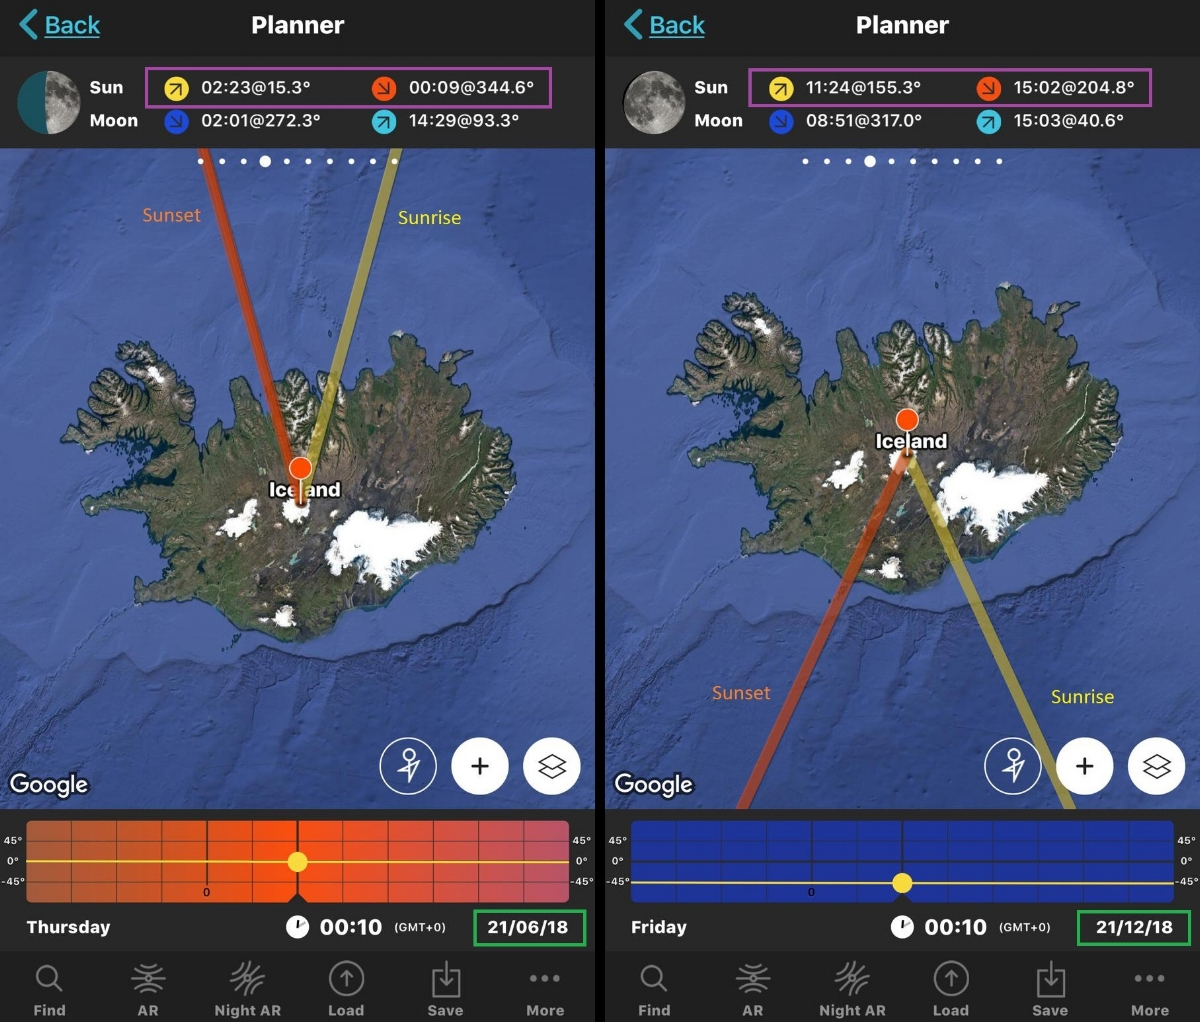 Screen grabs of the App 'Photopills' showing an example of variation in sunrise and sunset times and Azimuths at the two Equinoxes.  Left: At the summer Equinox (21st June) sunrise is at 02:23AM and sunset is at 00:09AM - That's a really long day!  Right: At the winter Equinox, sunrise is at 11:24AM and sunset is at 3:02PM. That's a really short day!